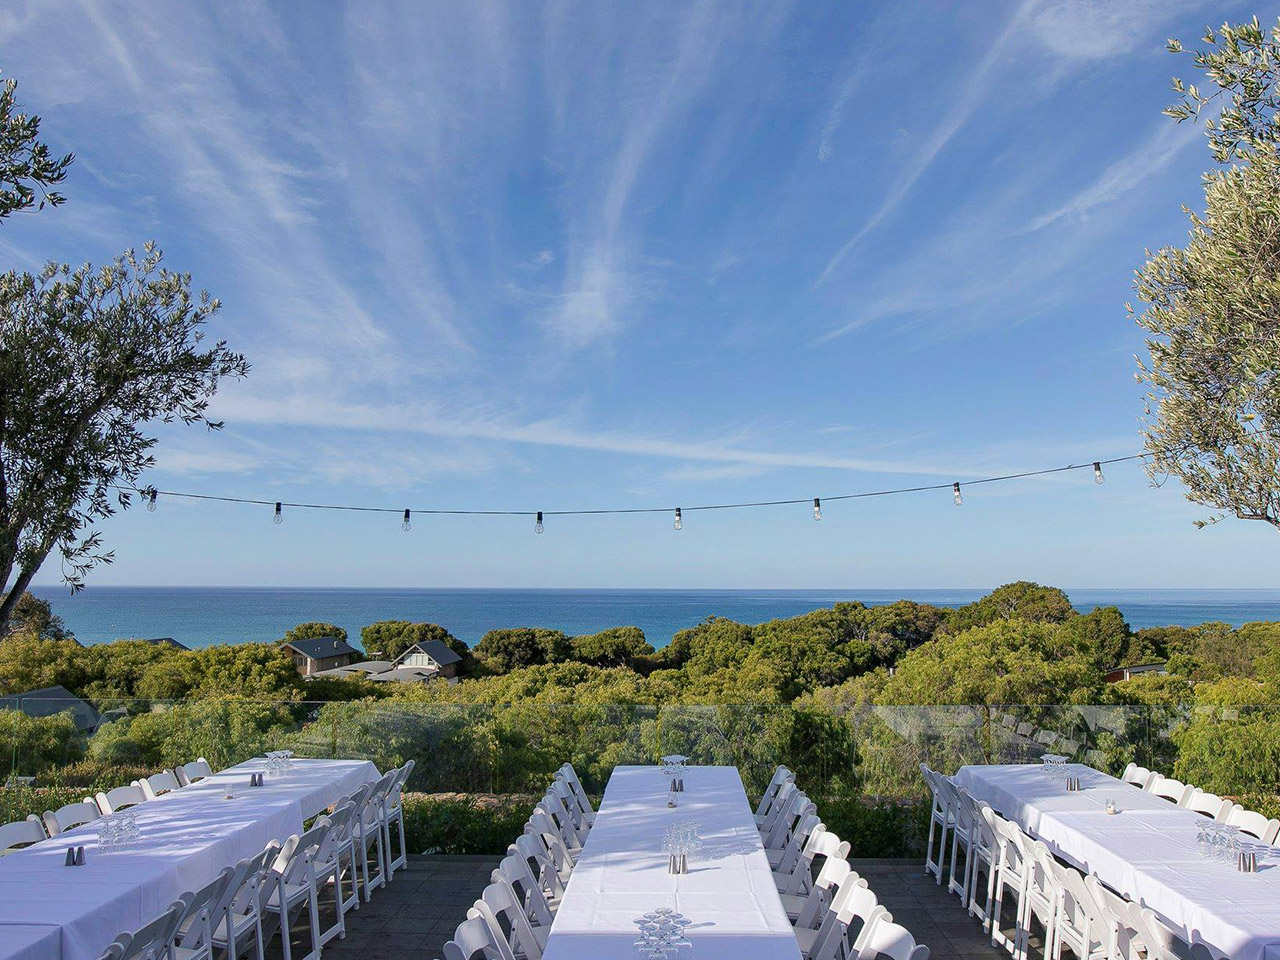 A Wedding Dinner Tables Set Up With The Ocean In The Background.